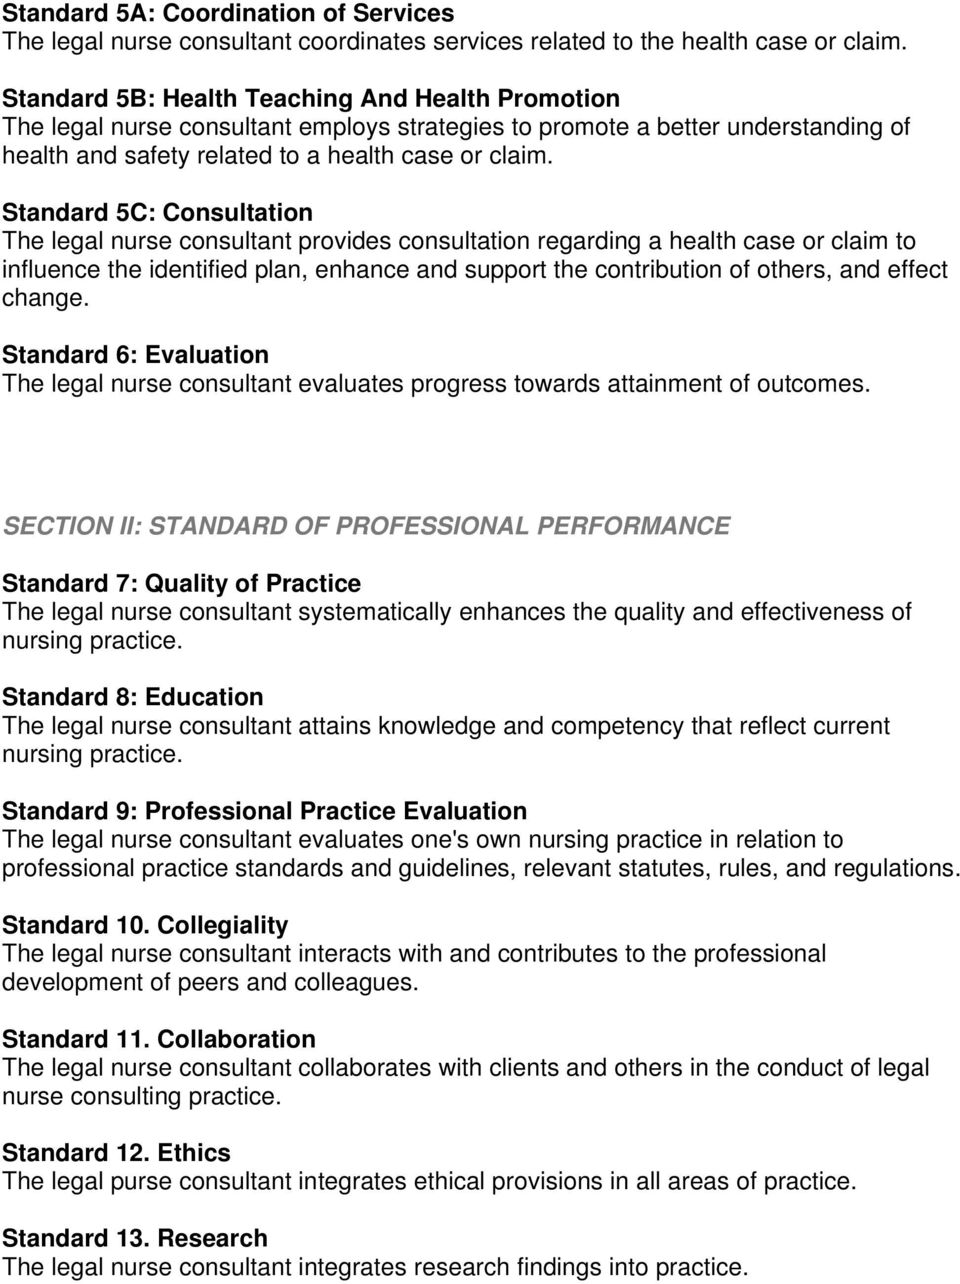 Standard 5C: Consultation The legal nurse consultant provides consultation regarding a health case or claim to influence the identified plan, enhance and support the contribution of others, and